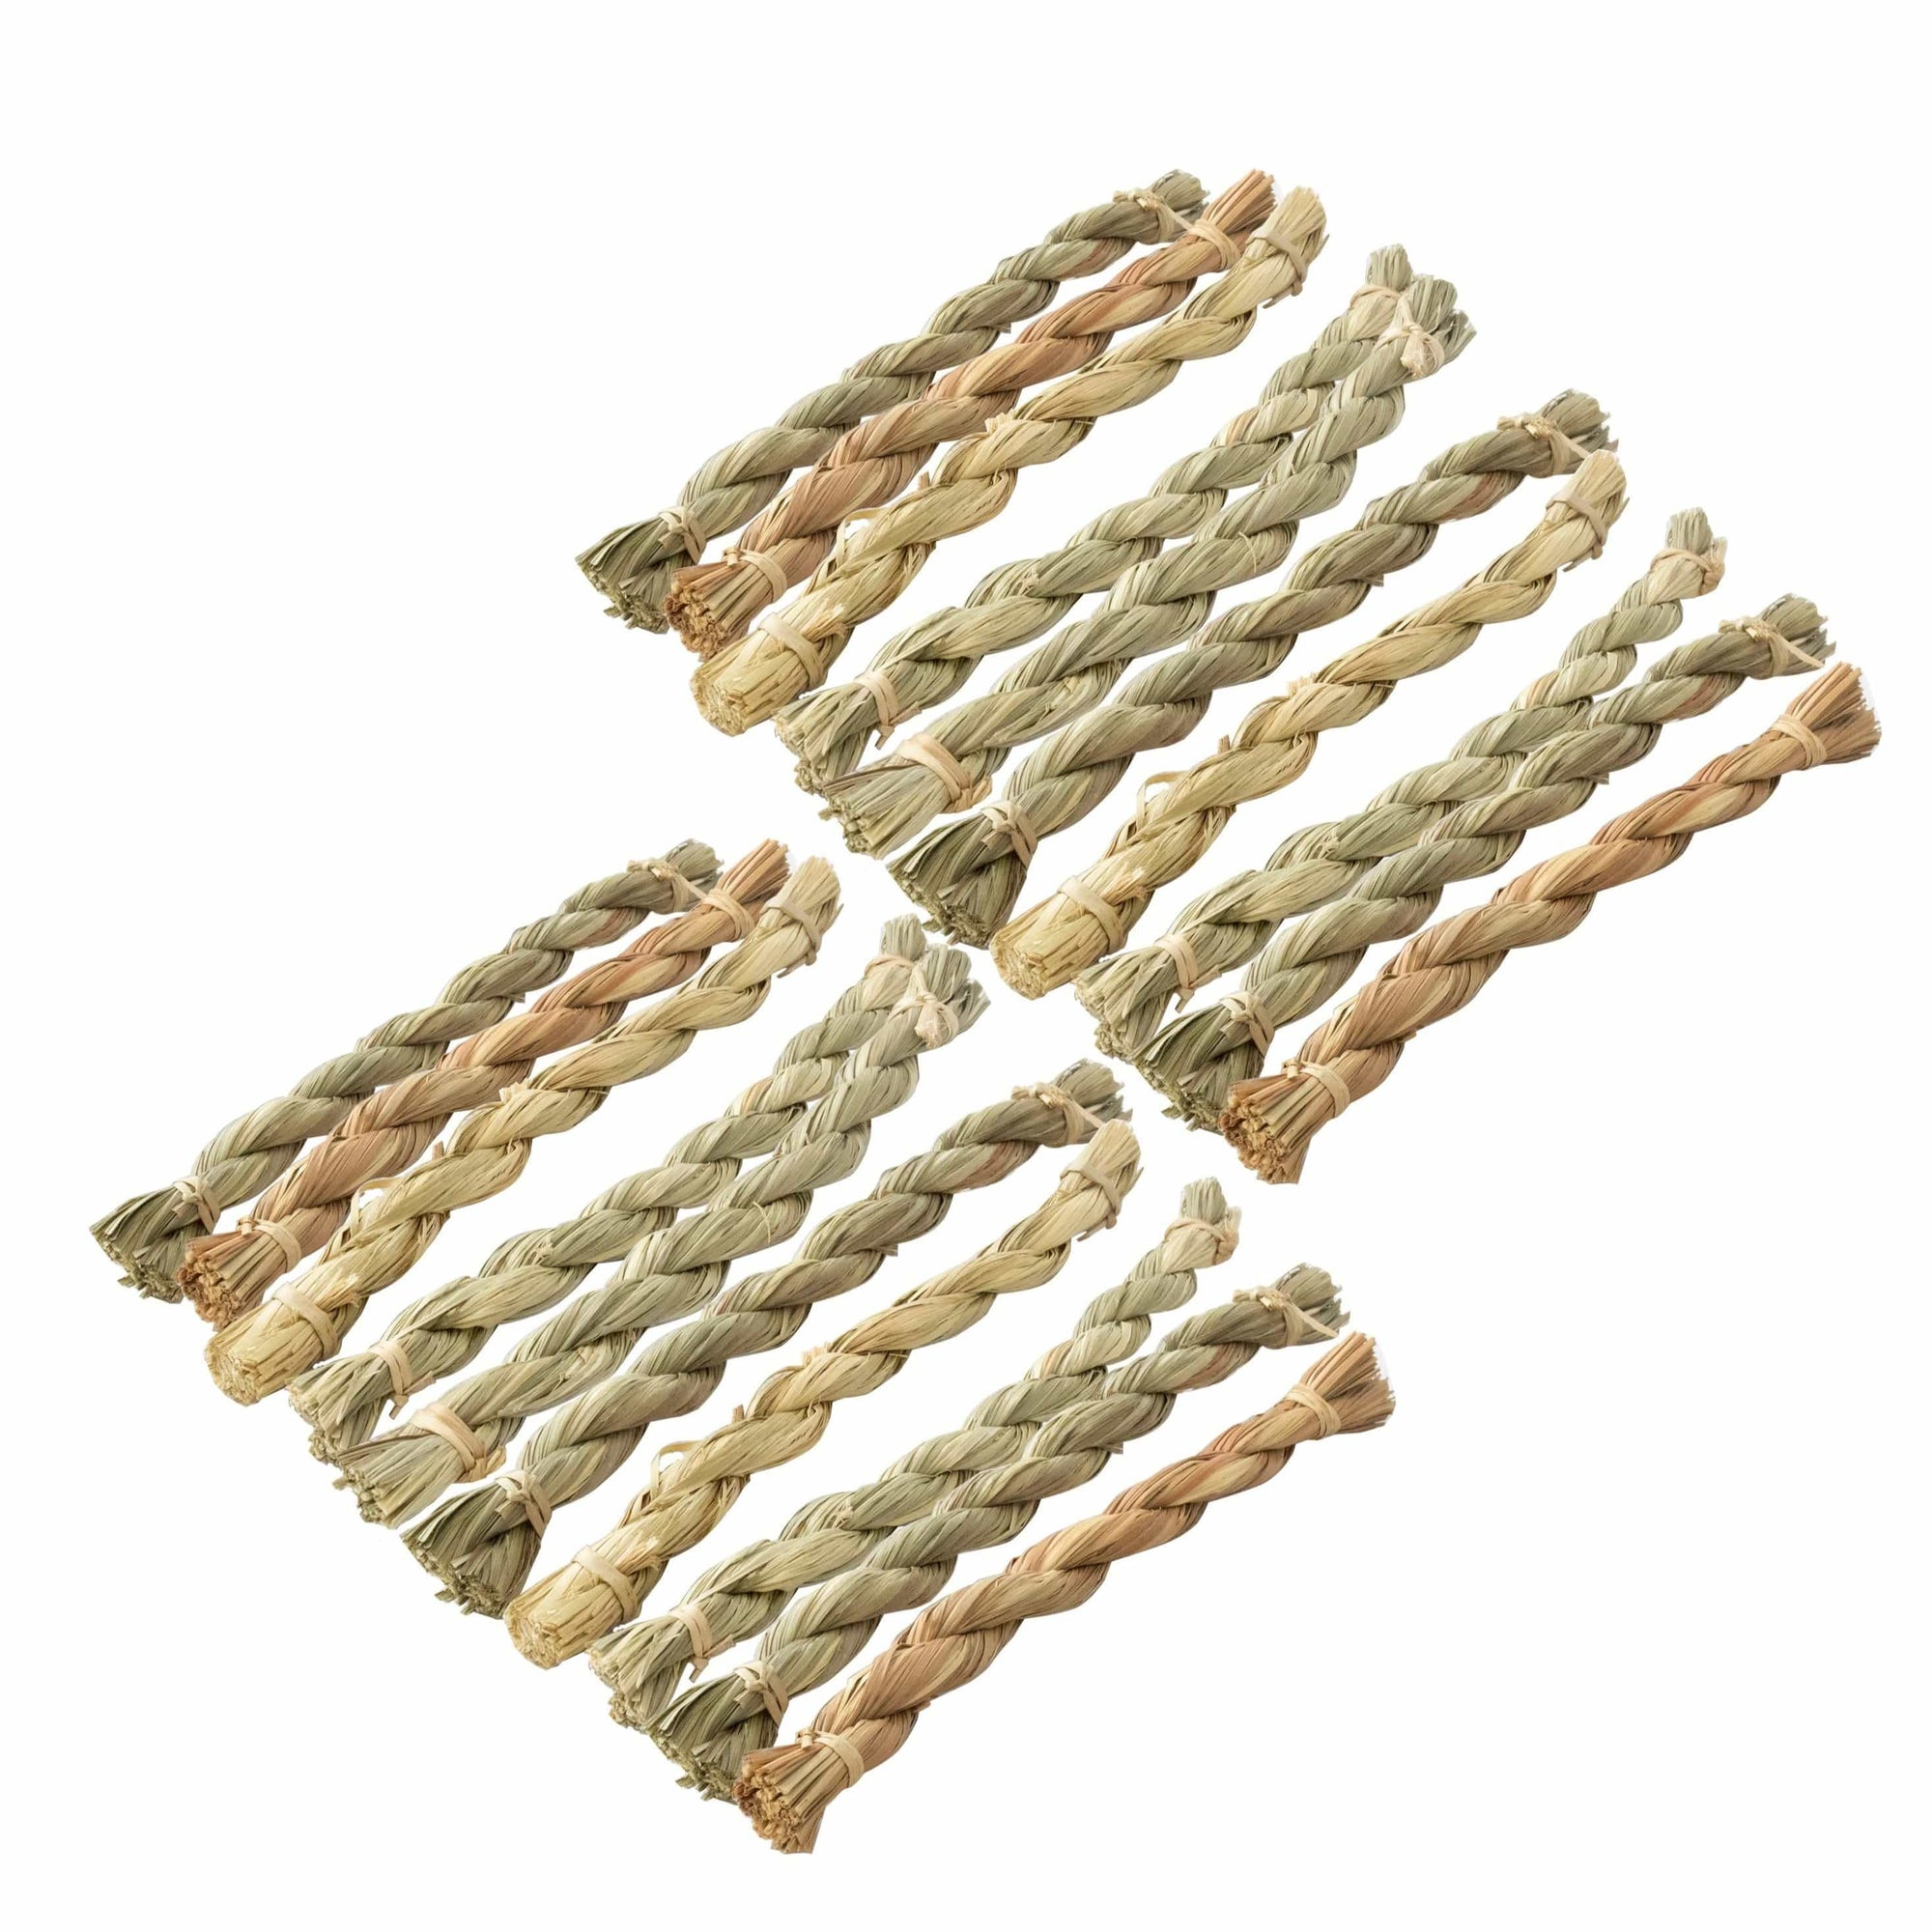 Made Terra Pet Toys SeaGrass Chew Sticks | Non-toxic Pet Snacks & Toys for Genuinea Pigs, Rabbits and Small Pet